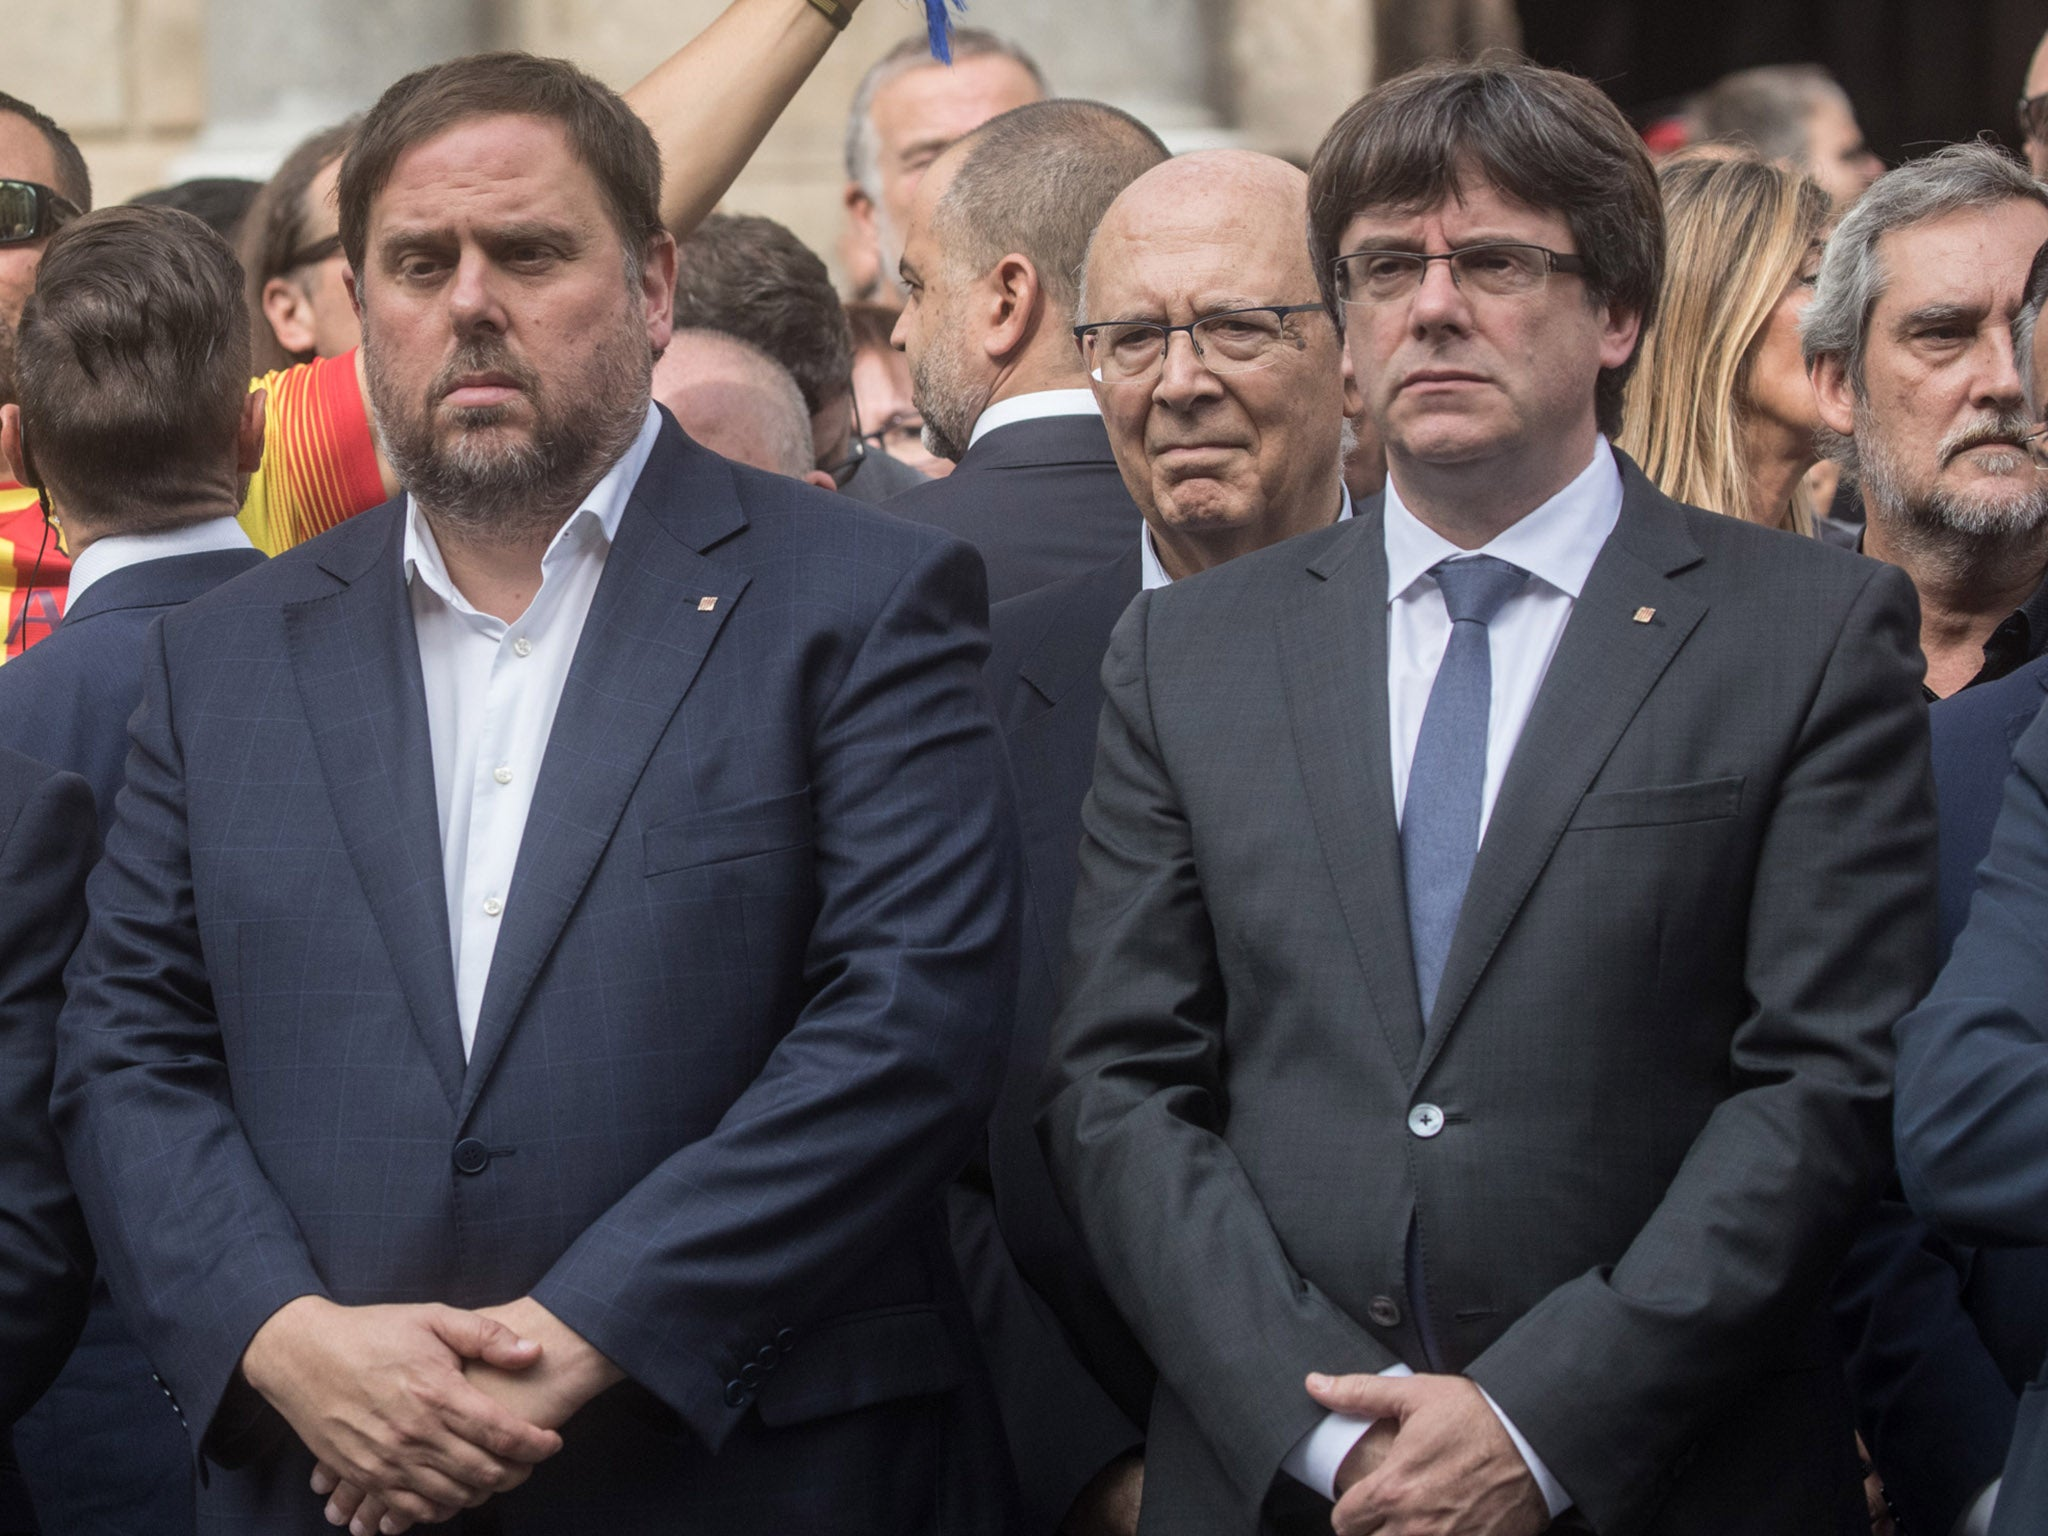 Catalonian VP says Spain has given them 'no choice but to proclaim a new republic'